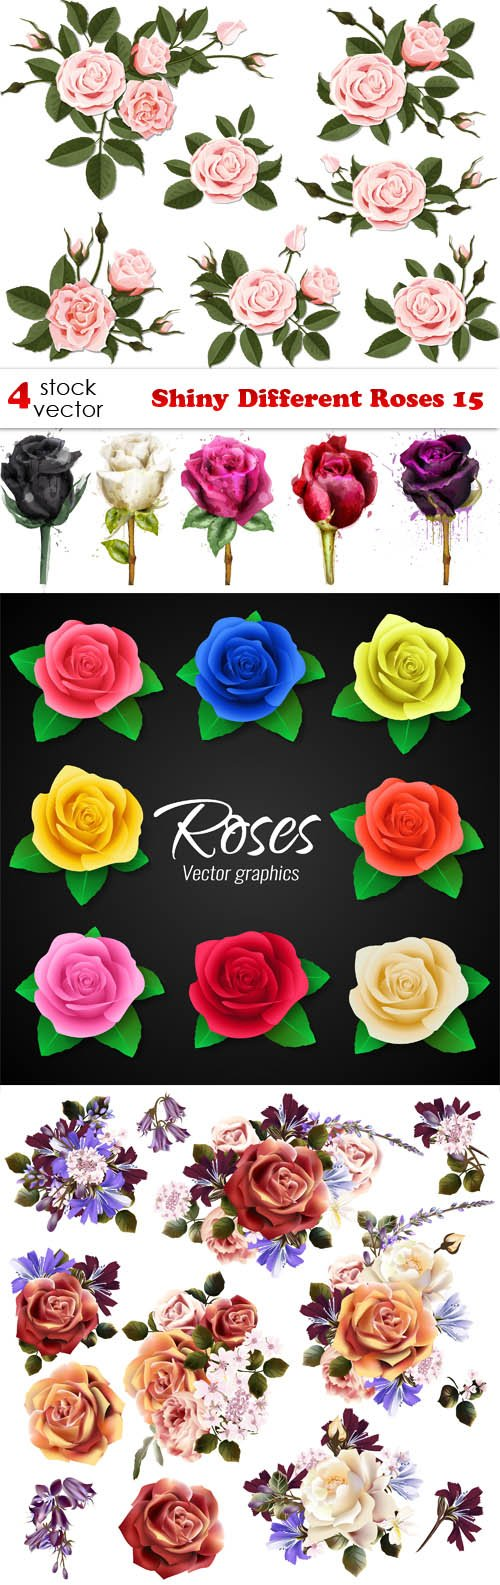 Vectors - Shiny Different Roses 15